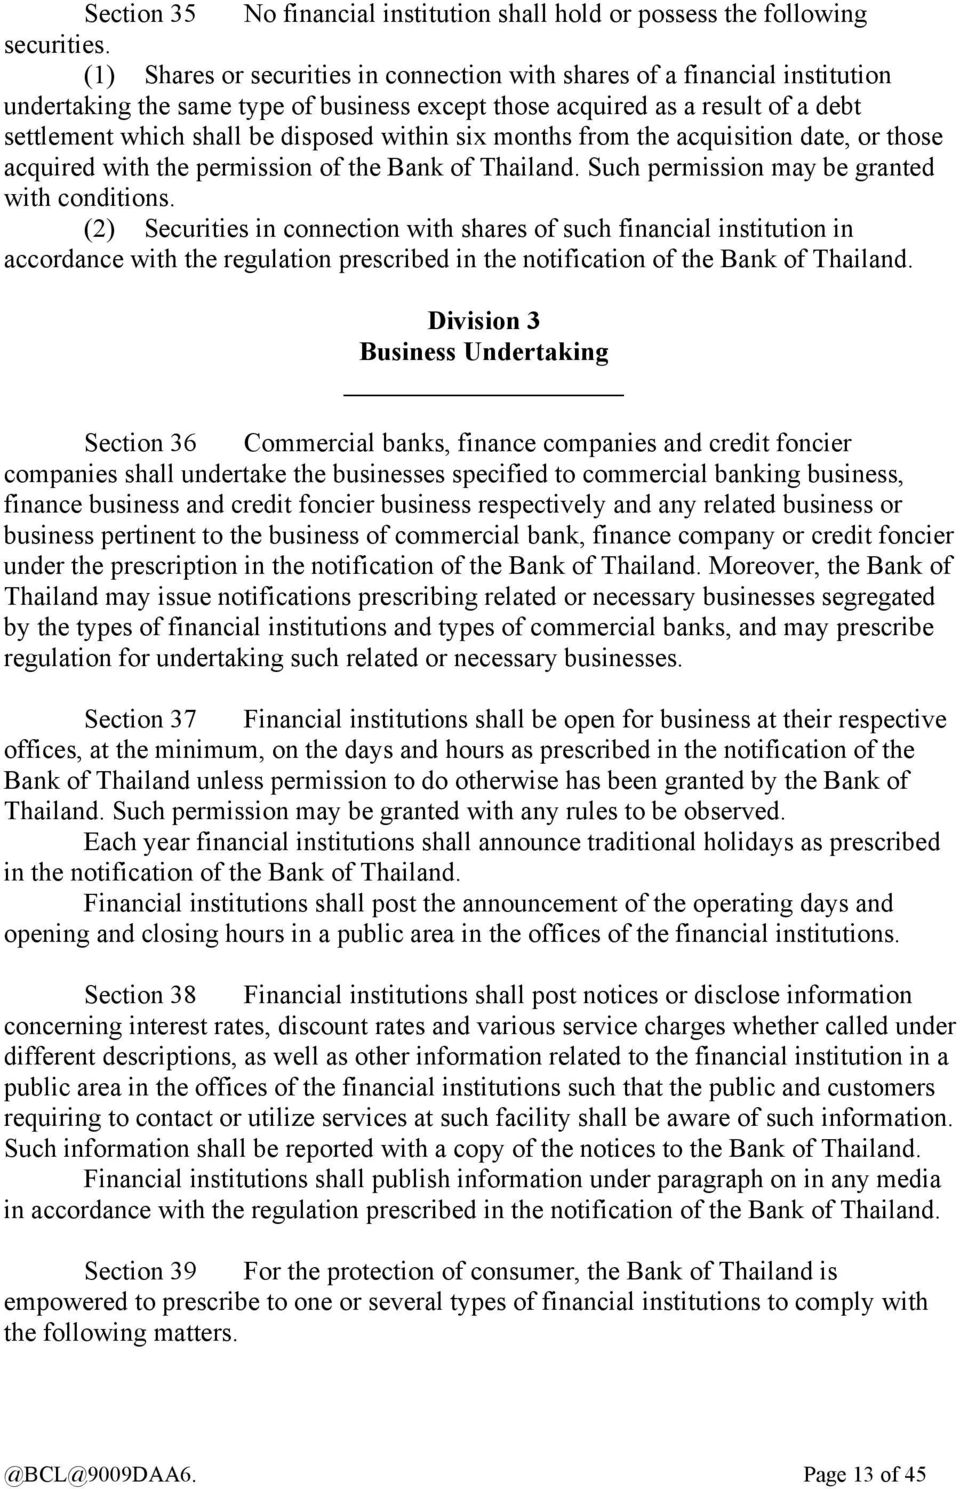 within six months from the acquisition date, or those acquired with the permission of the Bank of Thailand. Such permission may be granted with conditions.